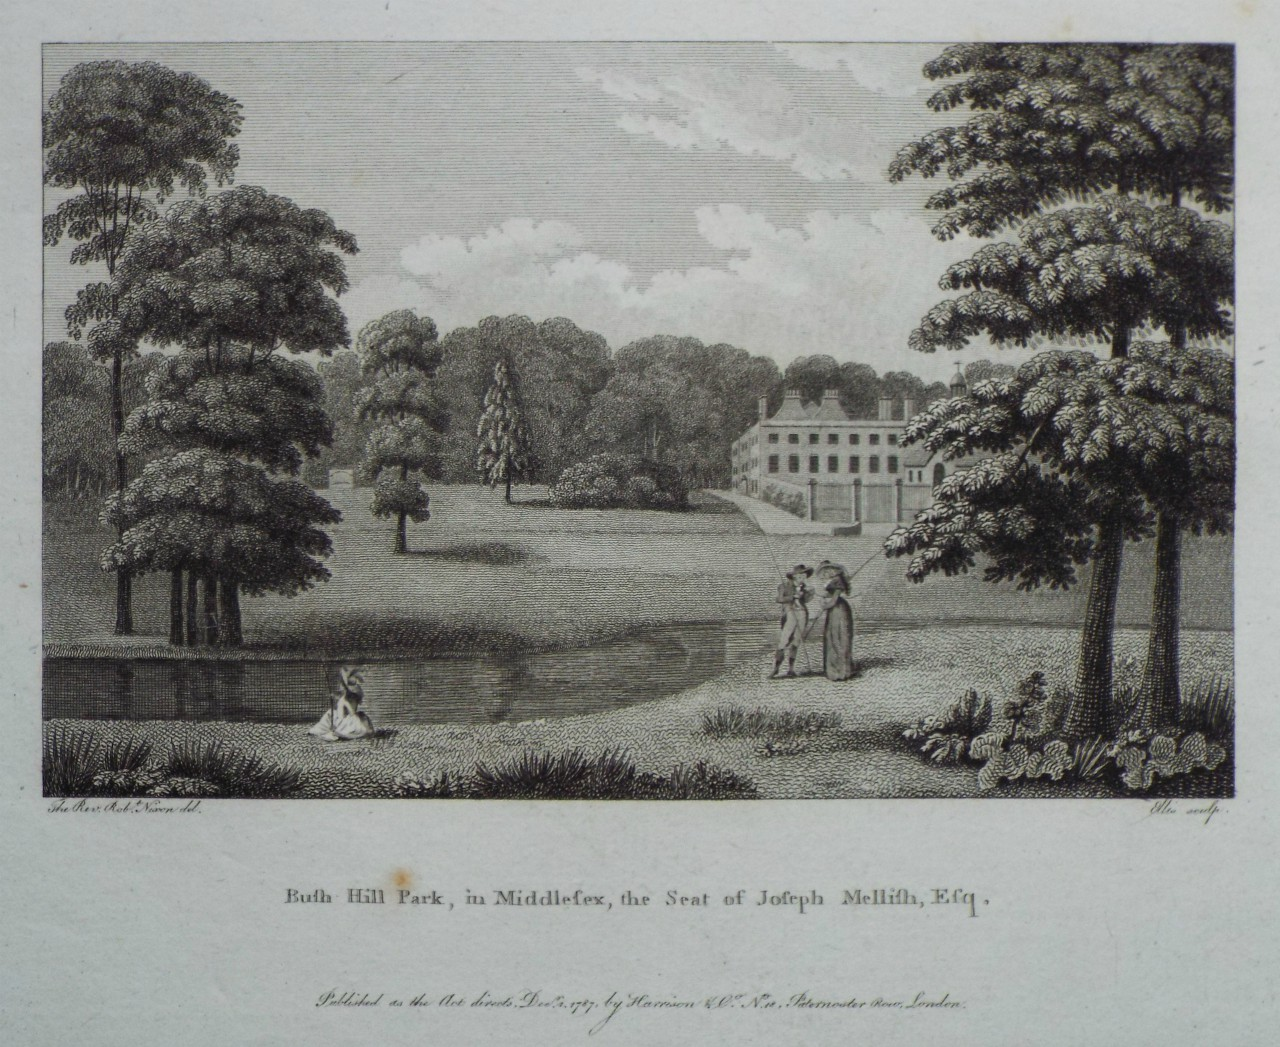 Print - Bush Hill Park, in Middlesex, the Seat of Joseph Mellish, Esqr. -